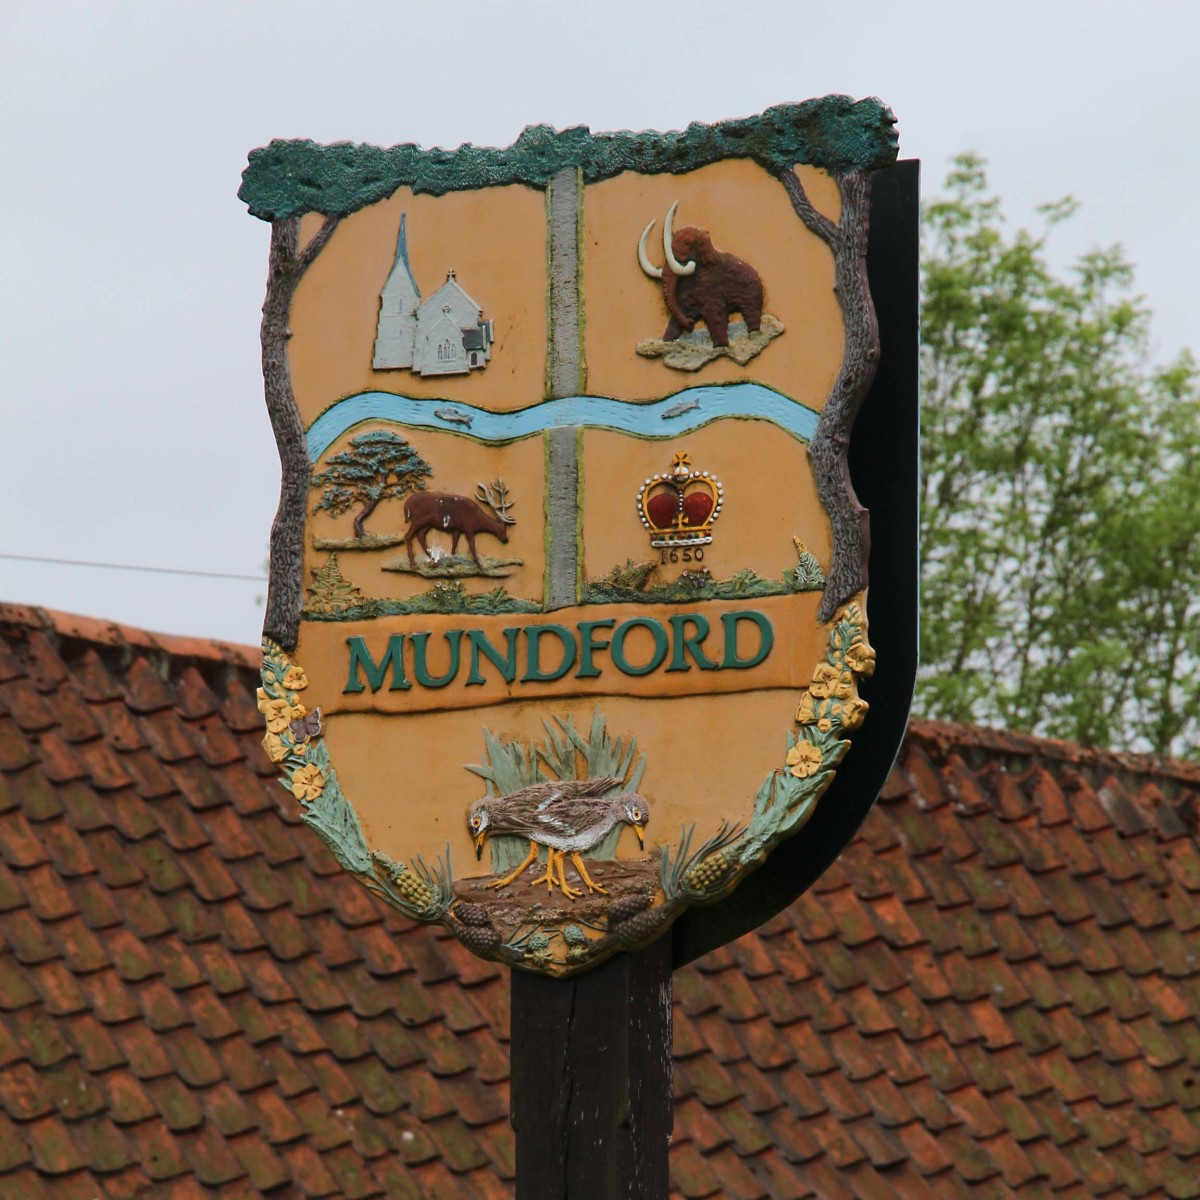 Local villages are proud of their heritage. This is the crest of 1000 year old Mundford, my overnight resting place